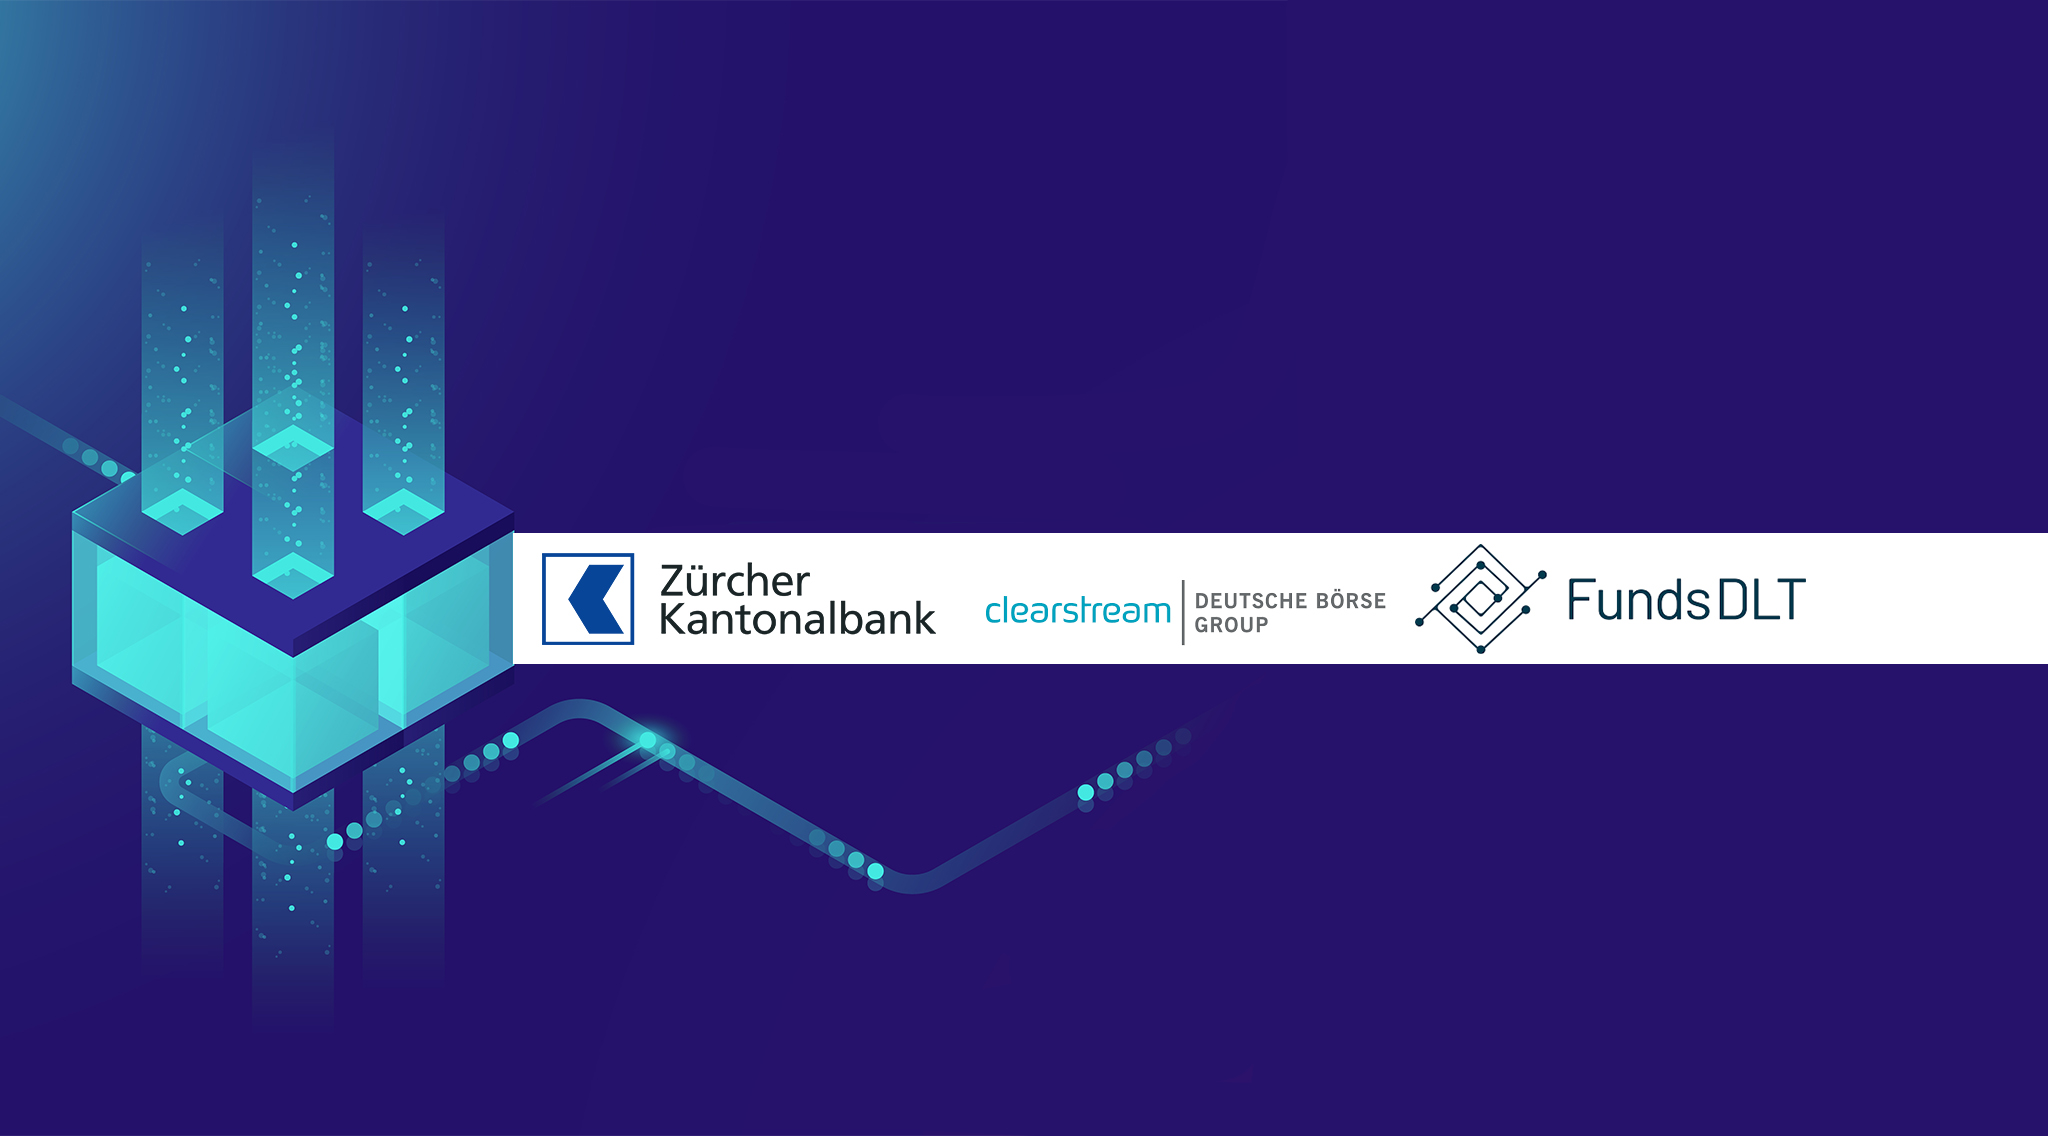 Zürcher Kantonalbank Completes First Blockchain-Based Fund Transaction | Fintech Schweiz Digital Finance News – FintechNewsCH